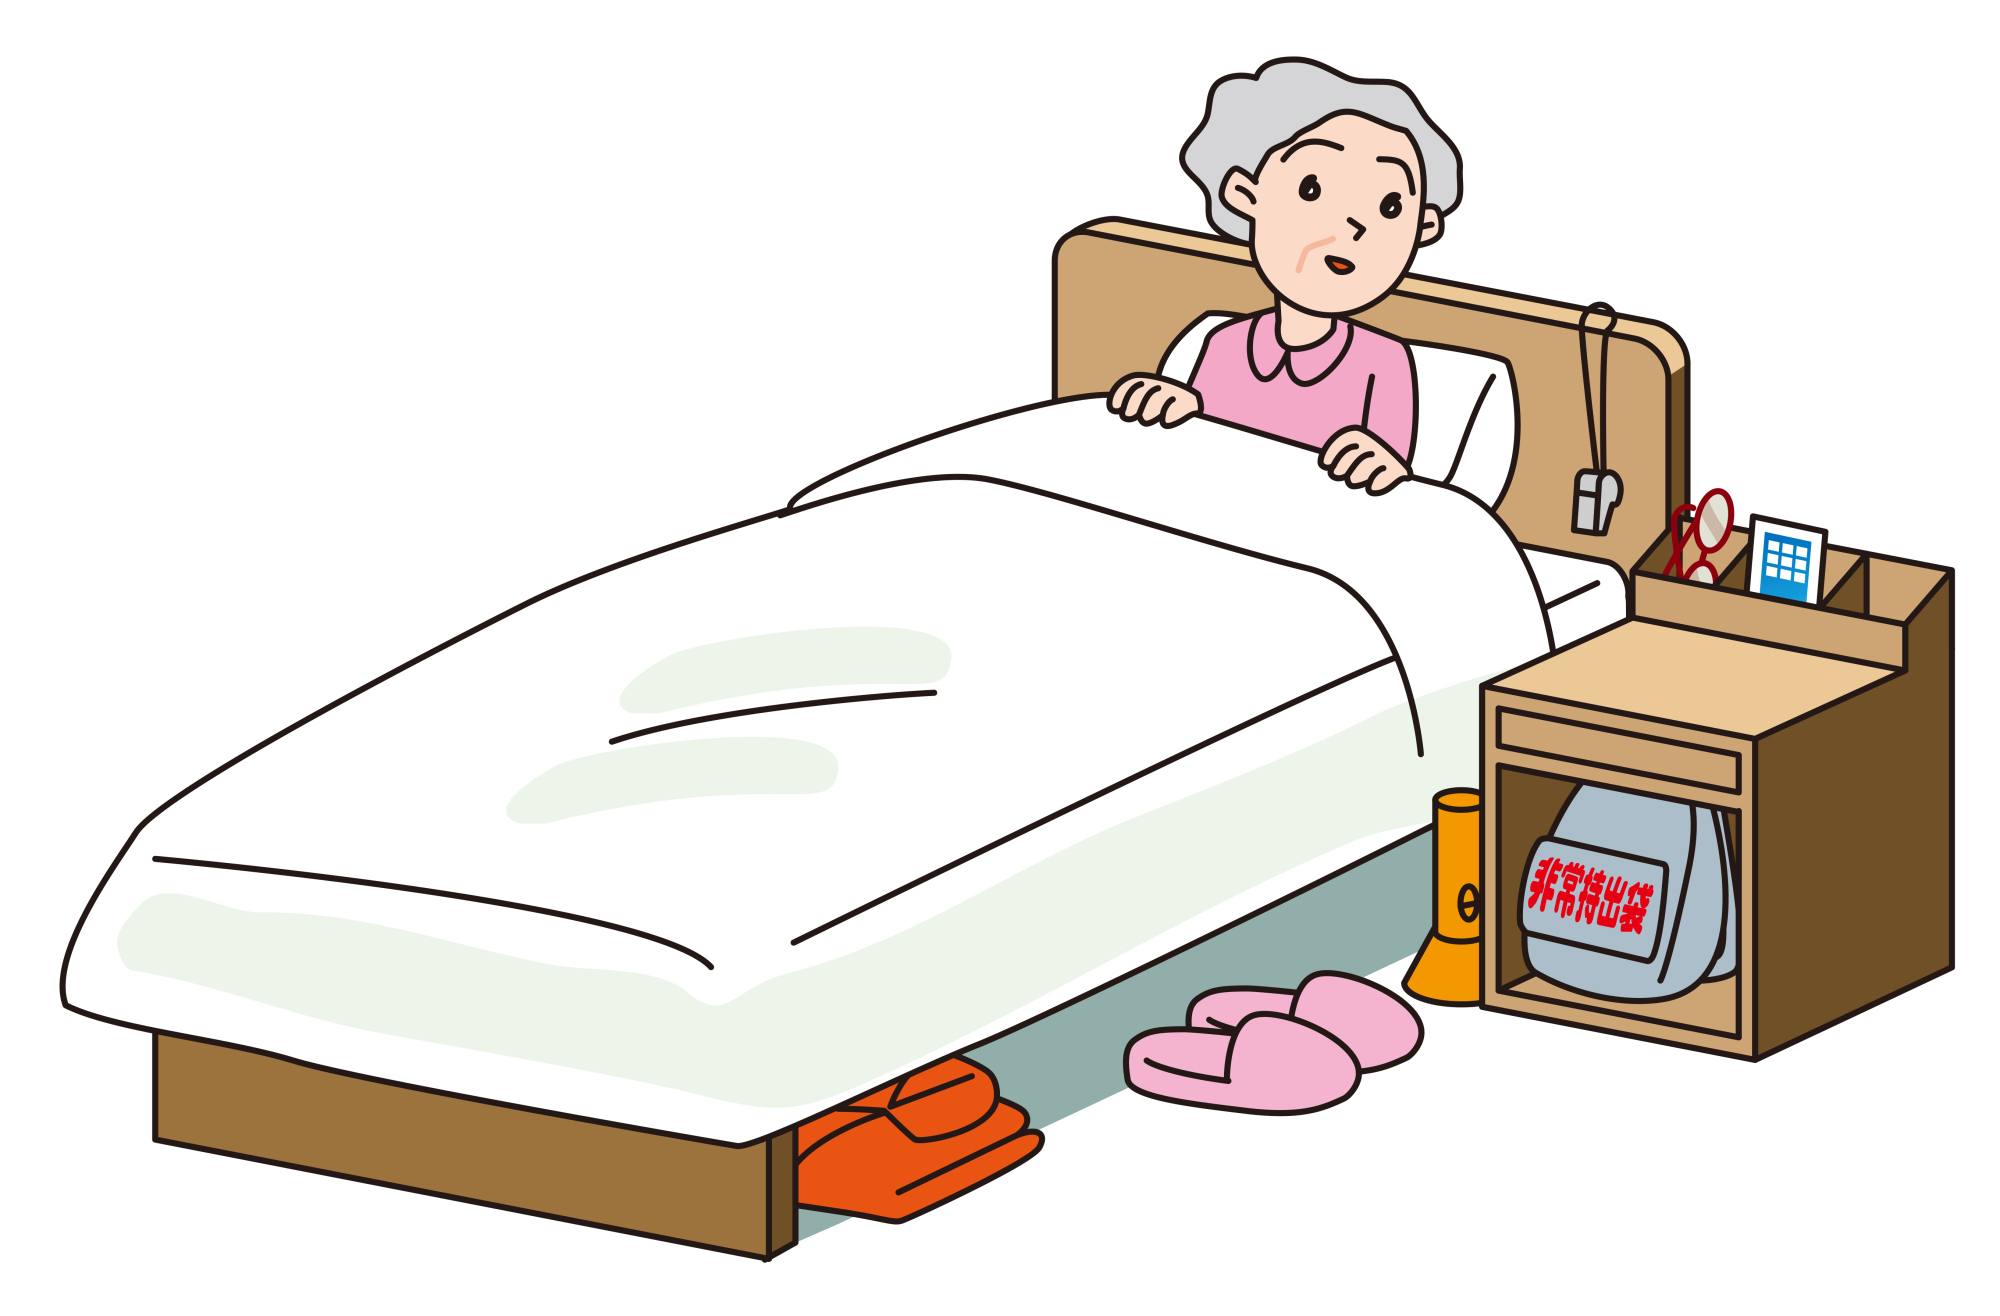 Better safe than sorry: Keep some items by your bed in case an earthquake hits in the night. | GETTY IMAGES